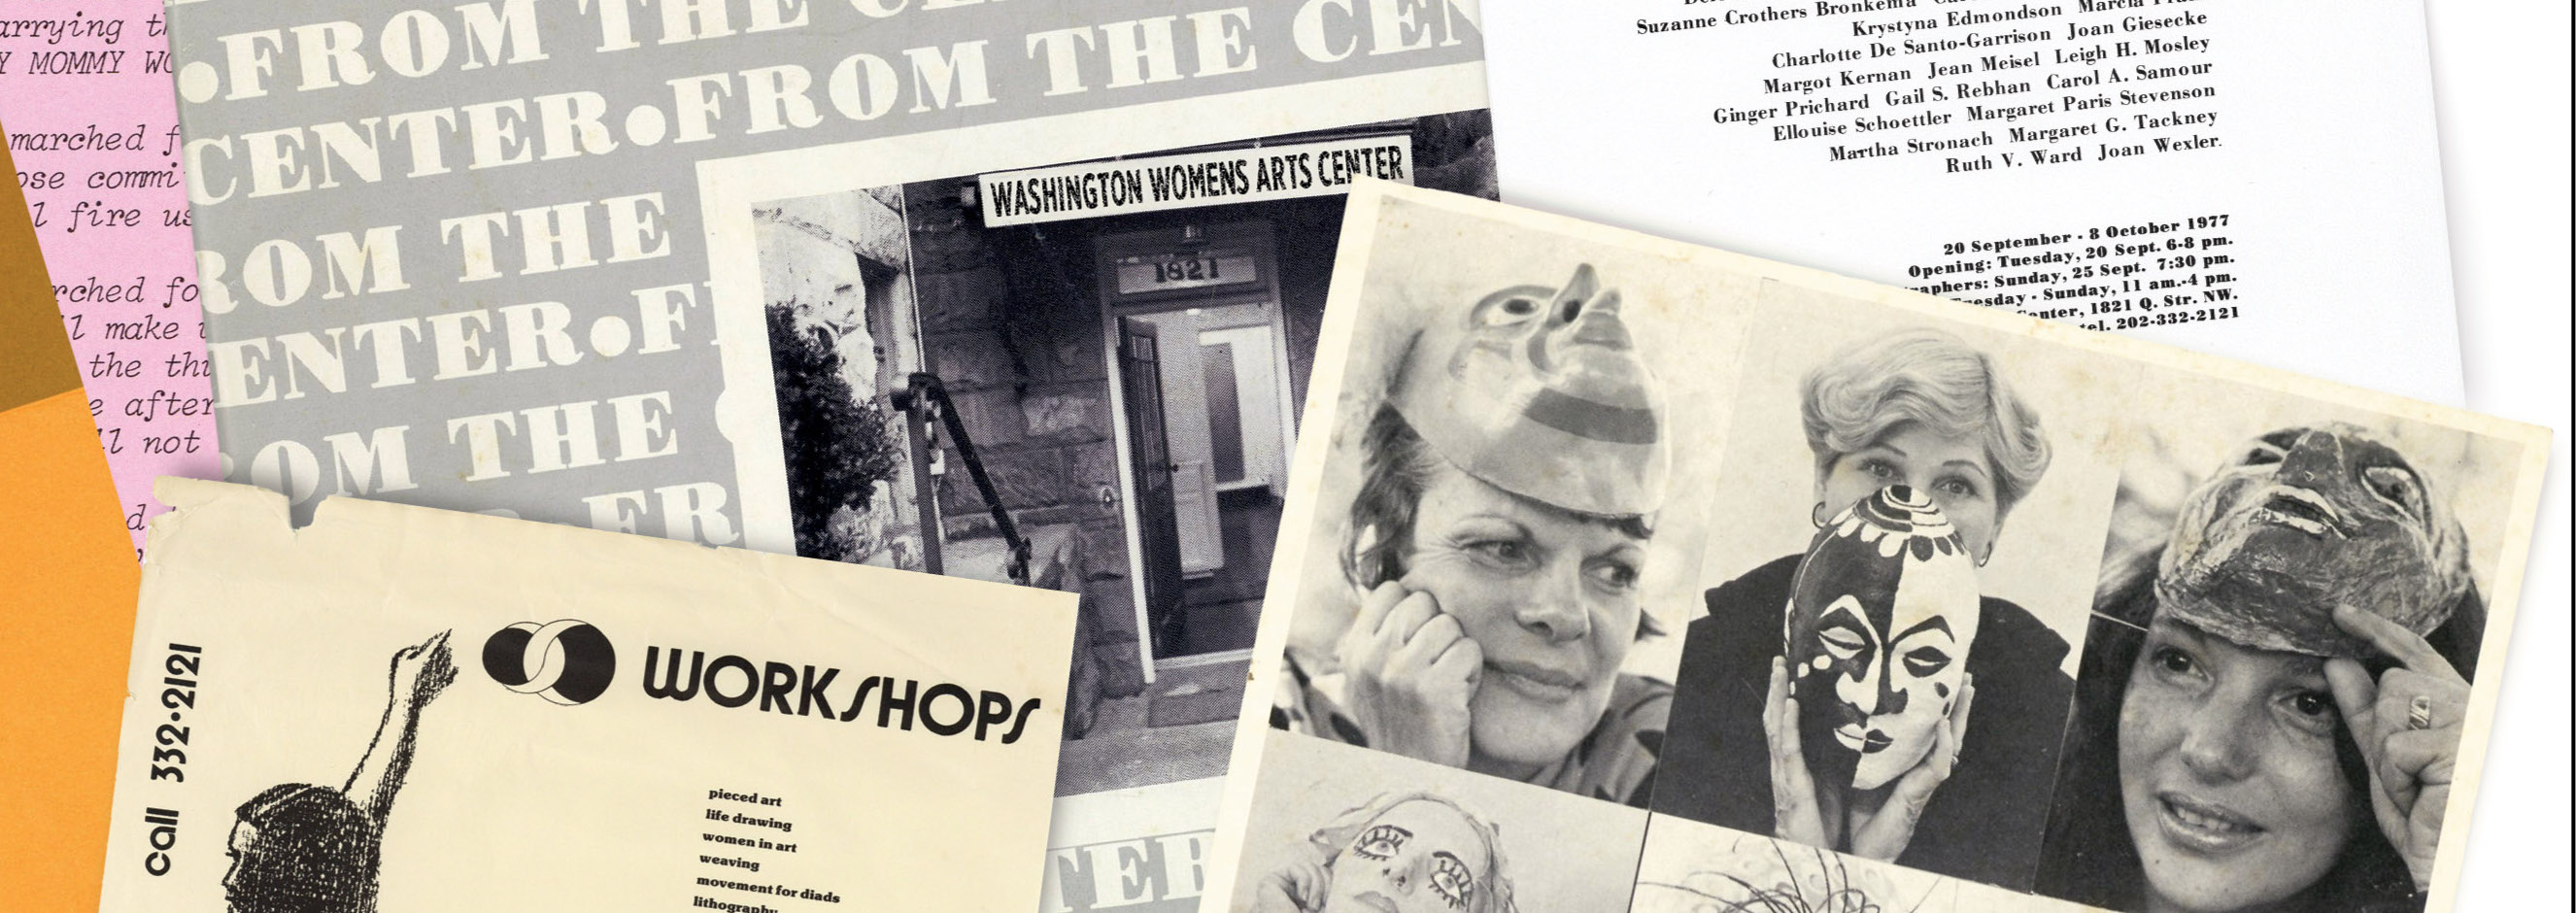 Collage of ephemera from the Washington Women's Arts Center